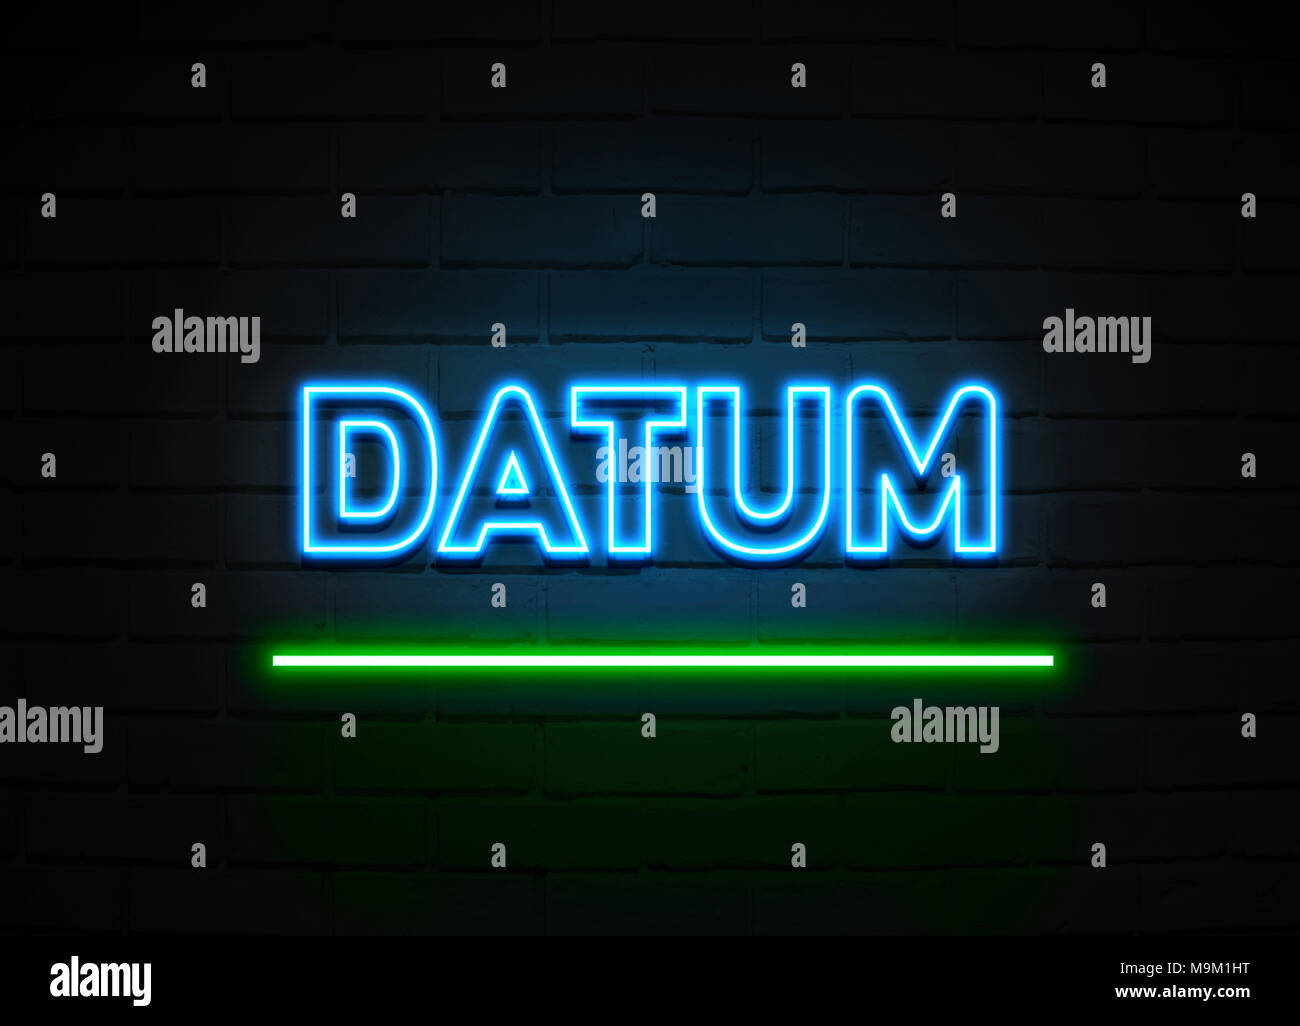 Datum neon sign - Glowing Neon Sign on brickwall wall - 3D rendered royalty free stock illustration. - Stock Image